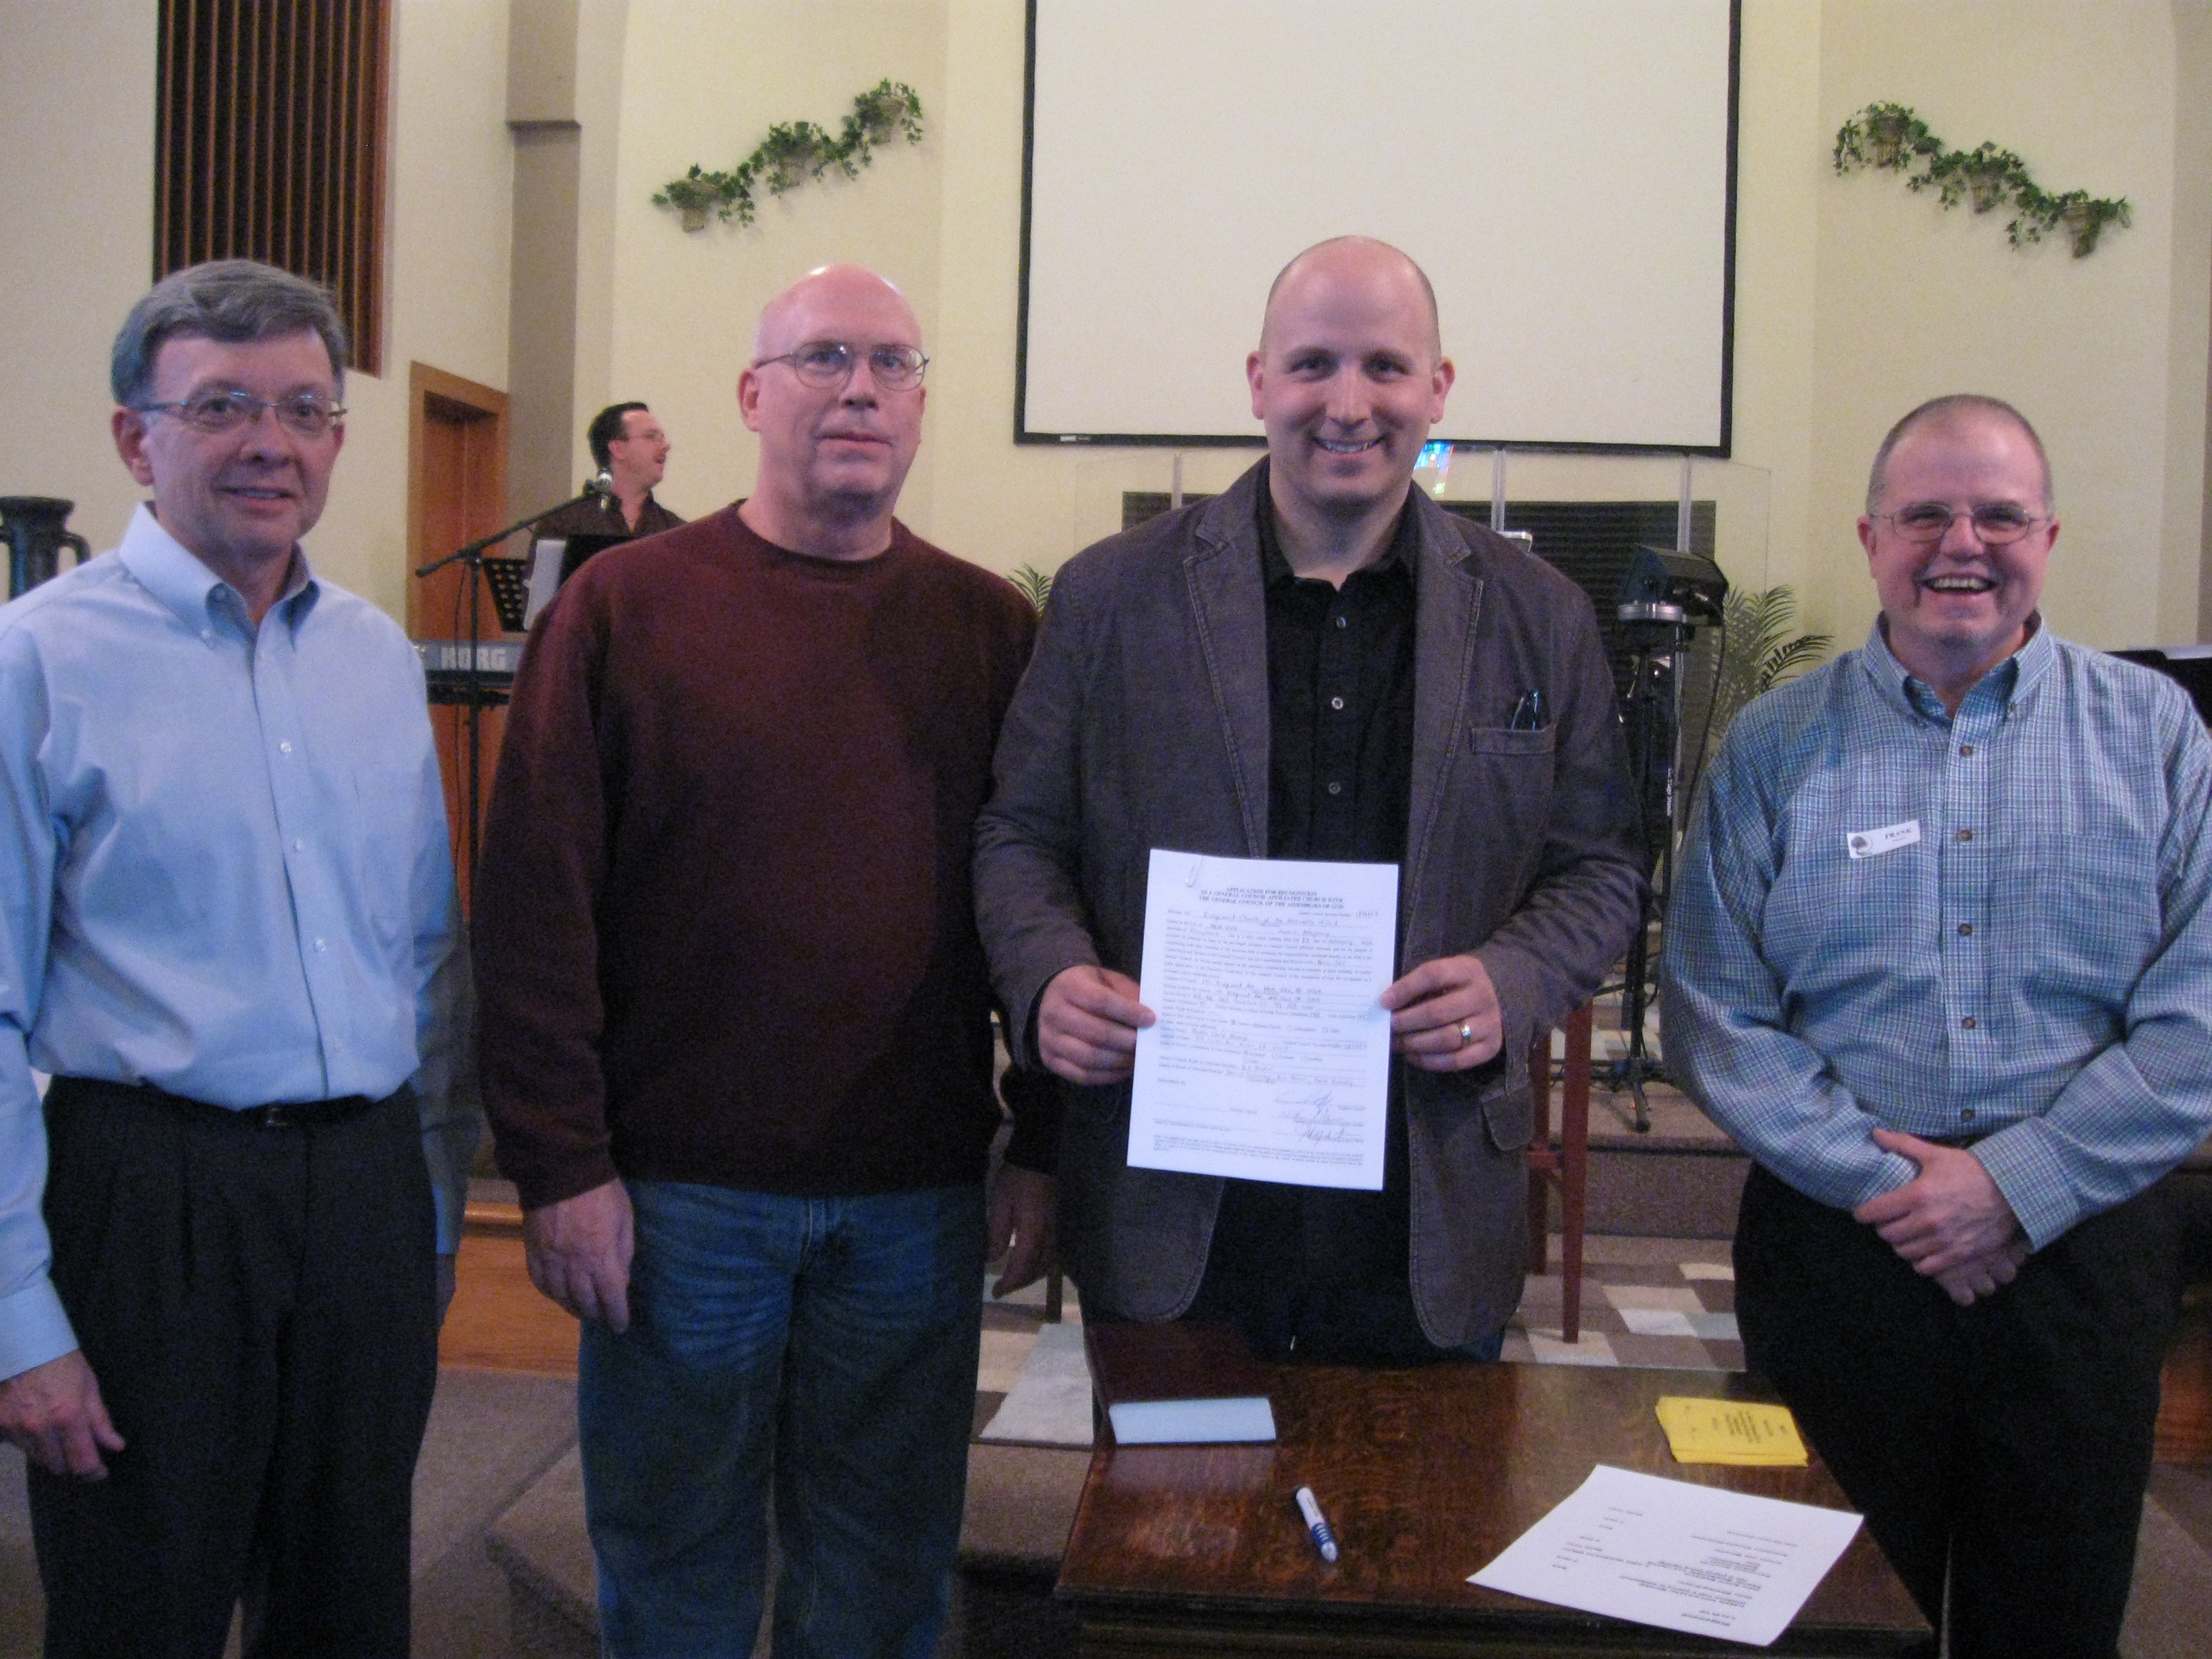 Pastor Chris Hezlep & the Ridgewood Church board with their sovereign church charter